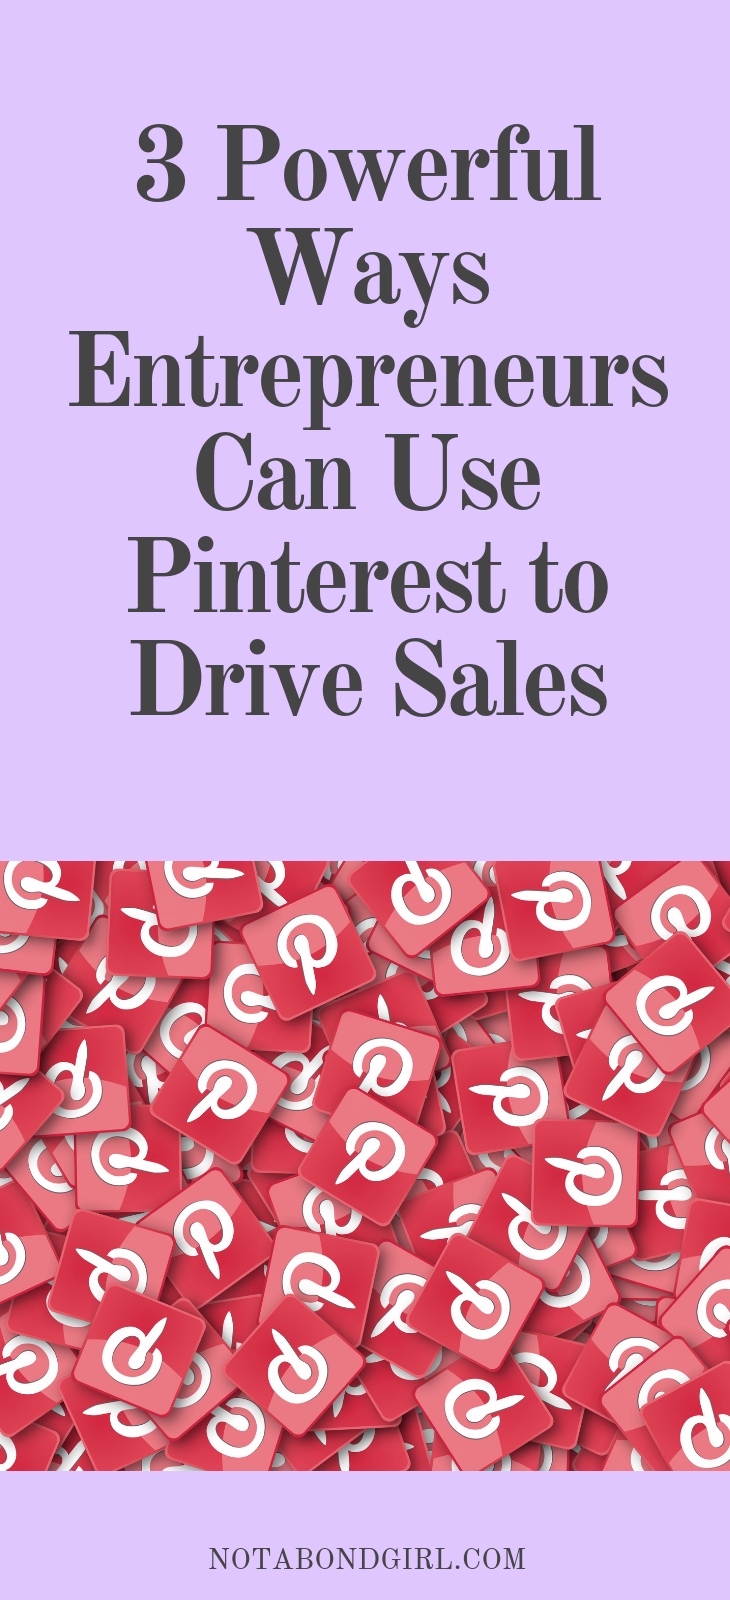 3 Uncommon Ways Entrepreneurs Can Use Pinterest to Promote Their Business